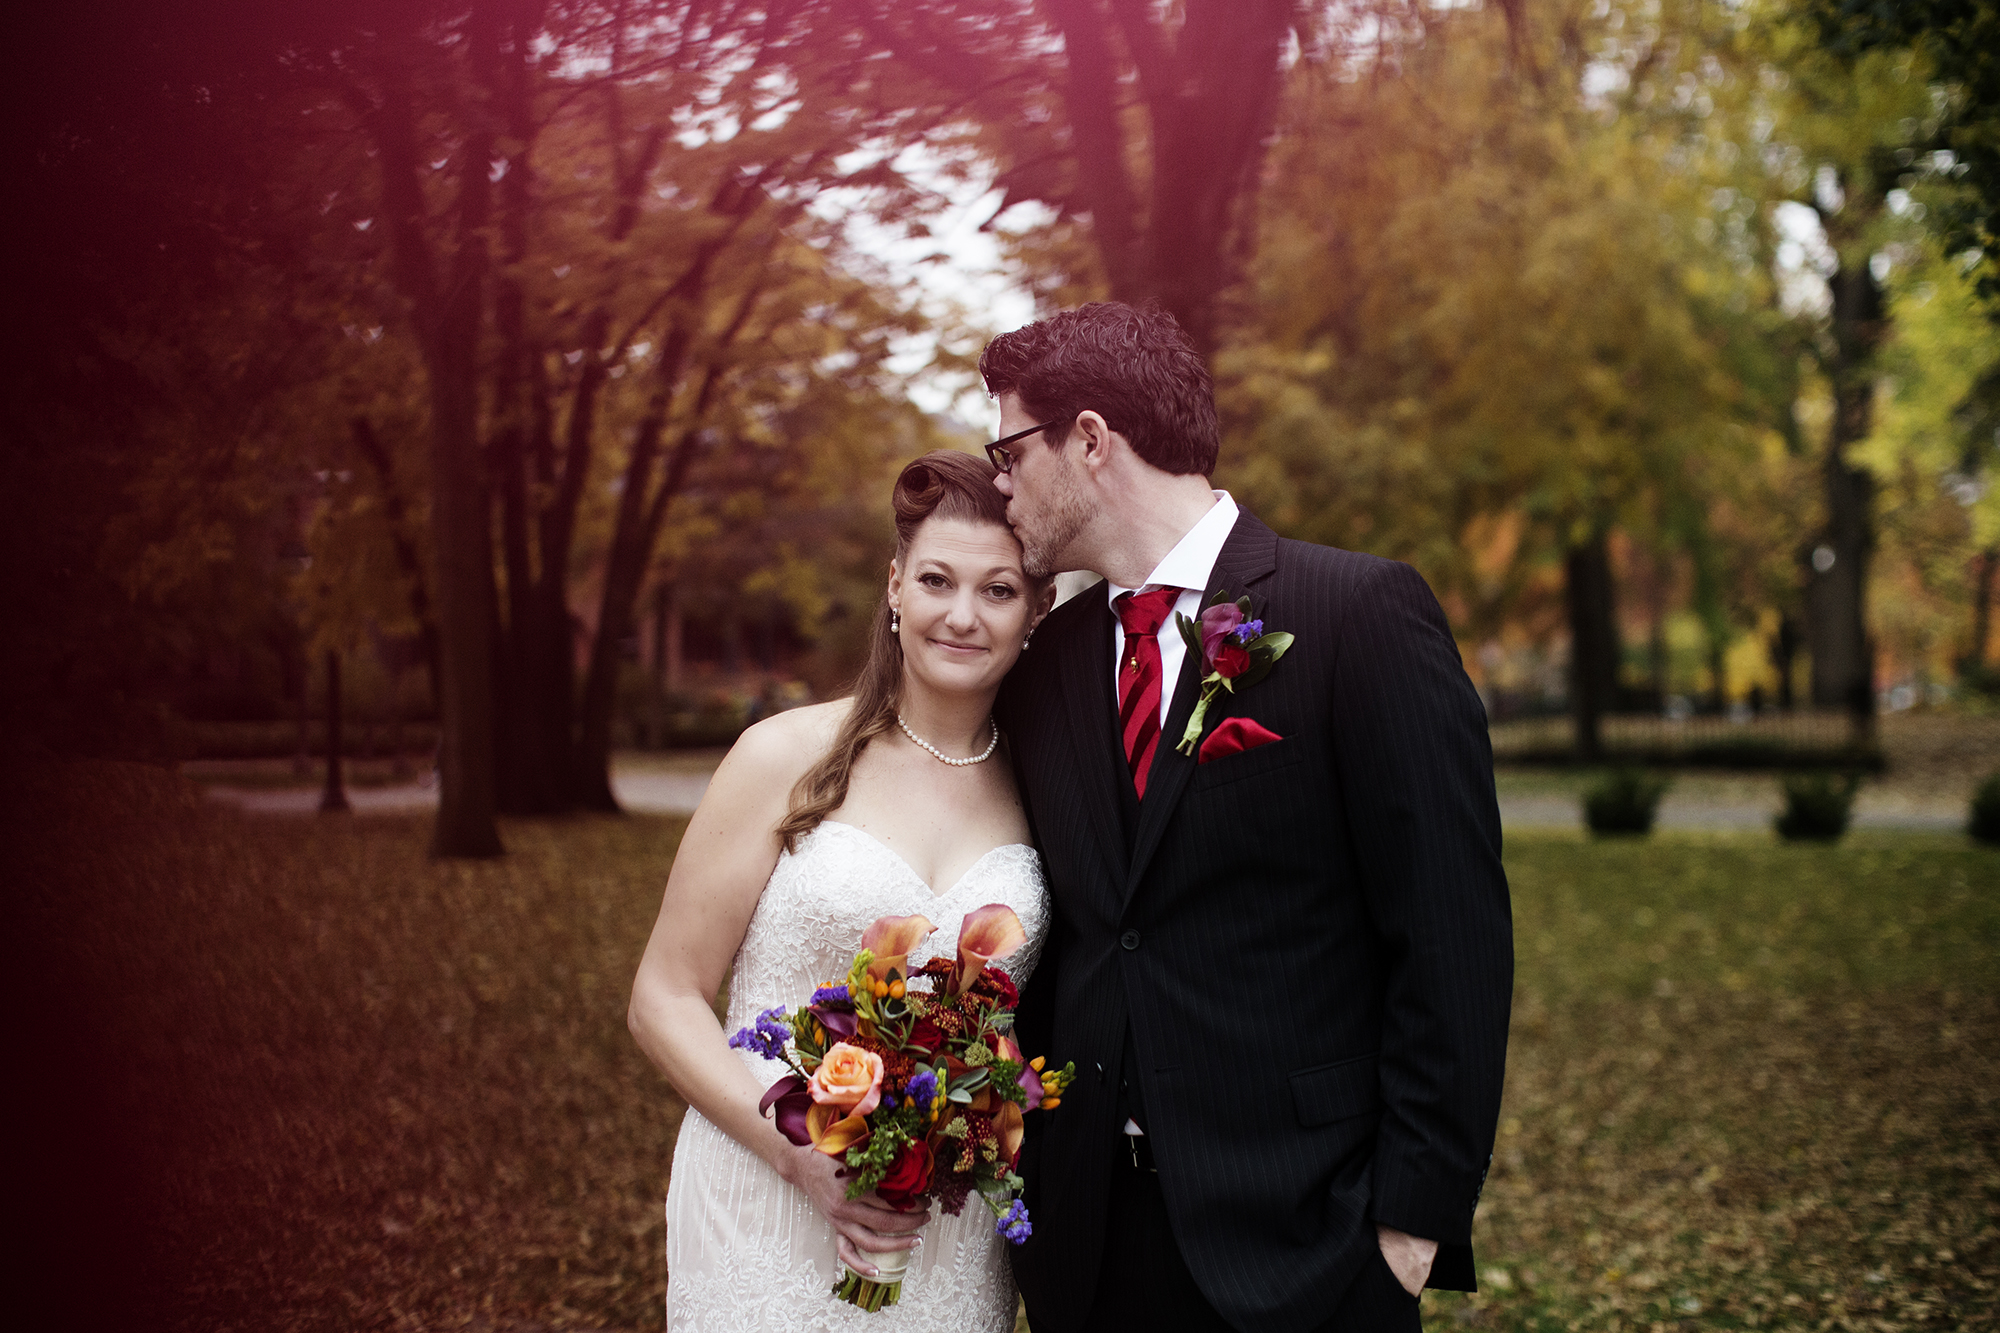 Wedding Photography MN | Photos by Photogen Inc. | Eliesa Johnson | Based in Minneapolis, Minnesota